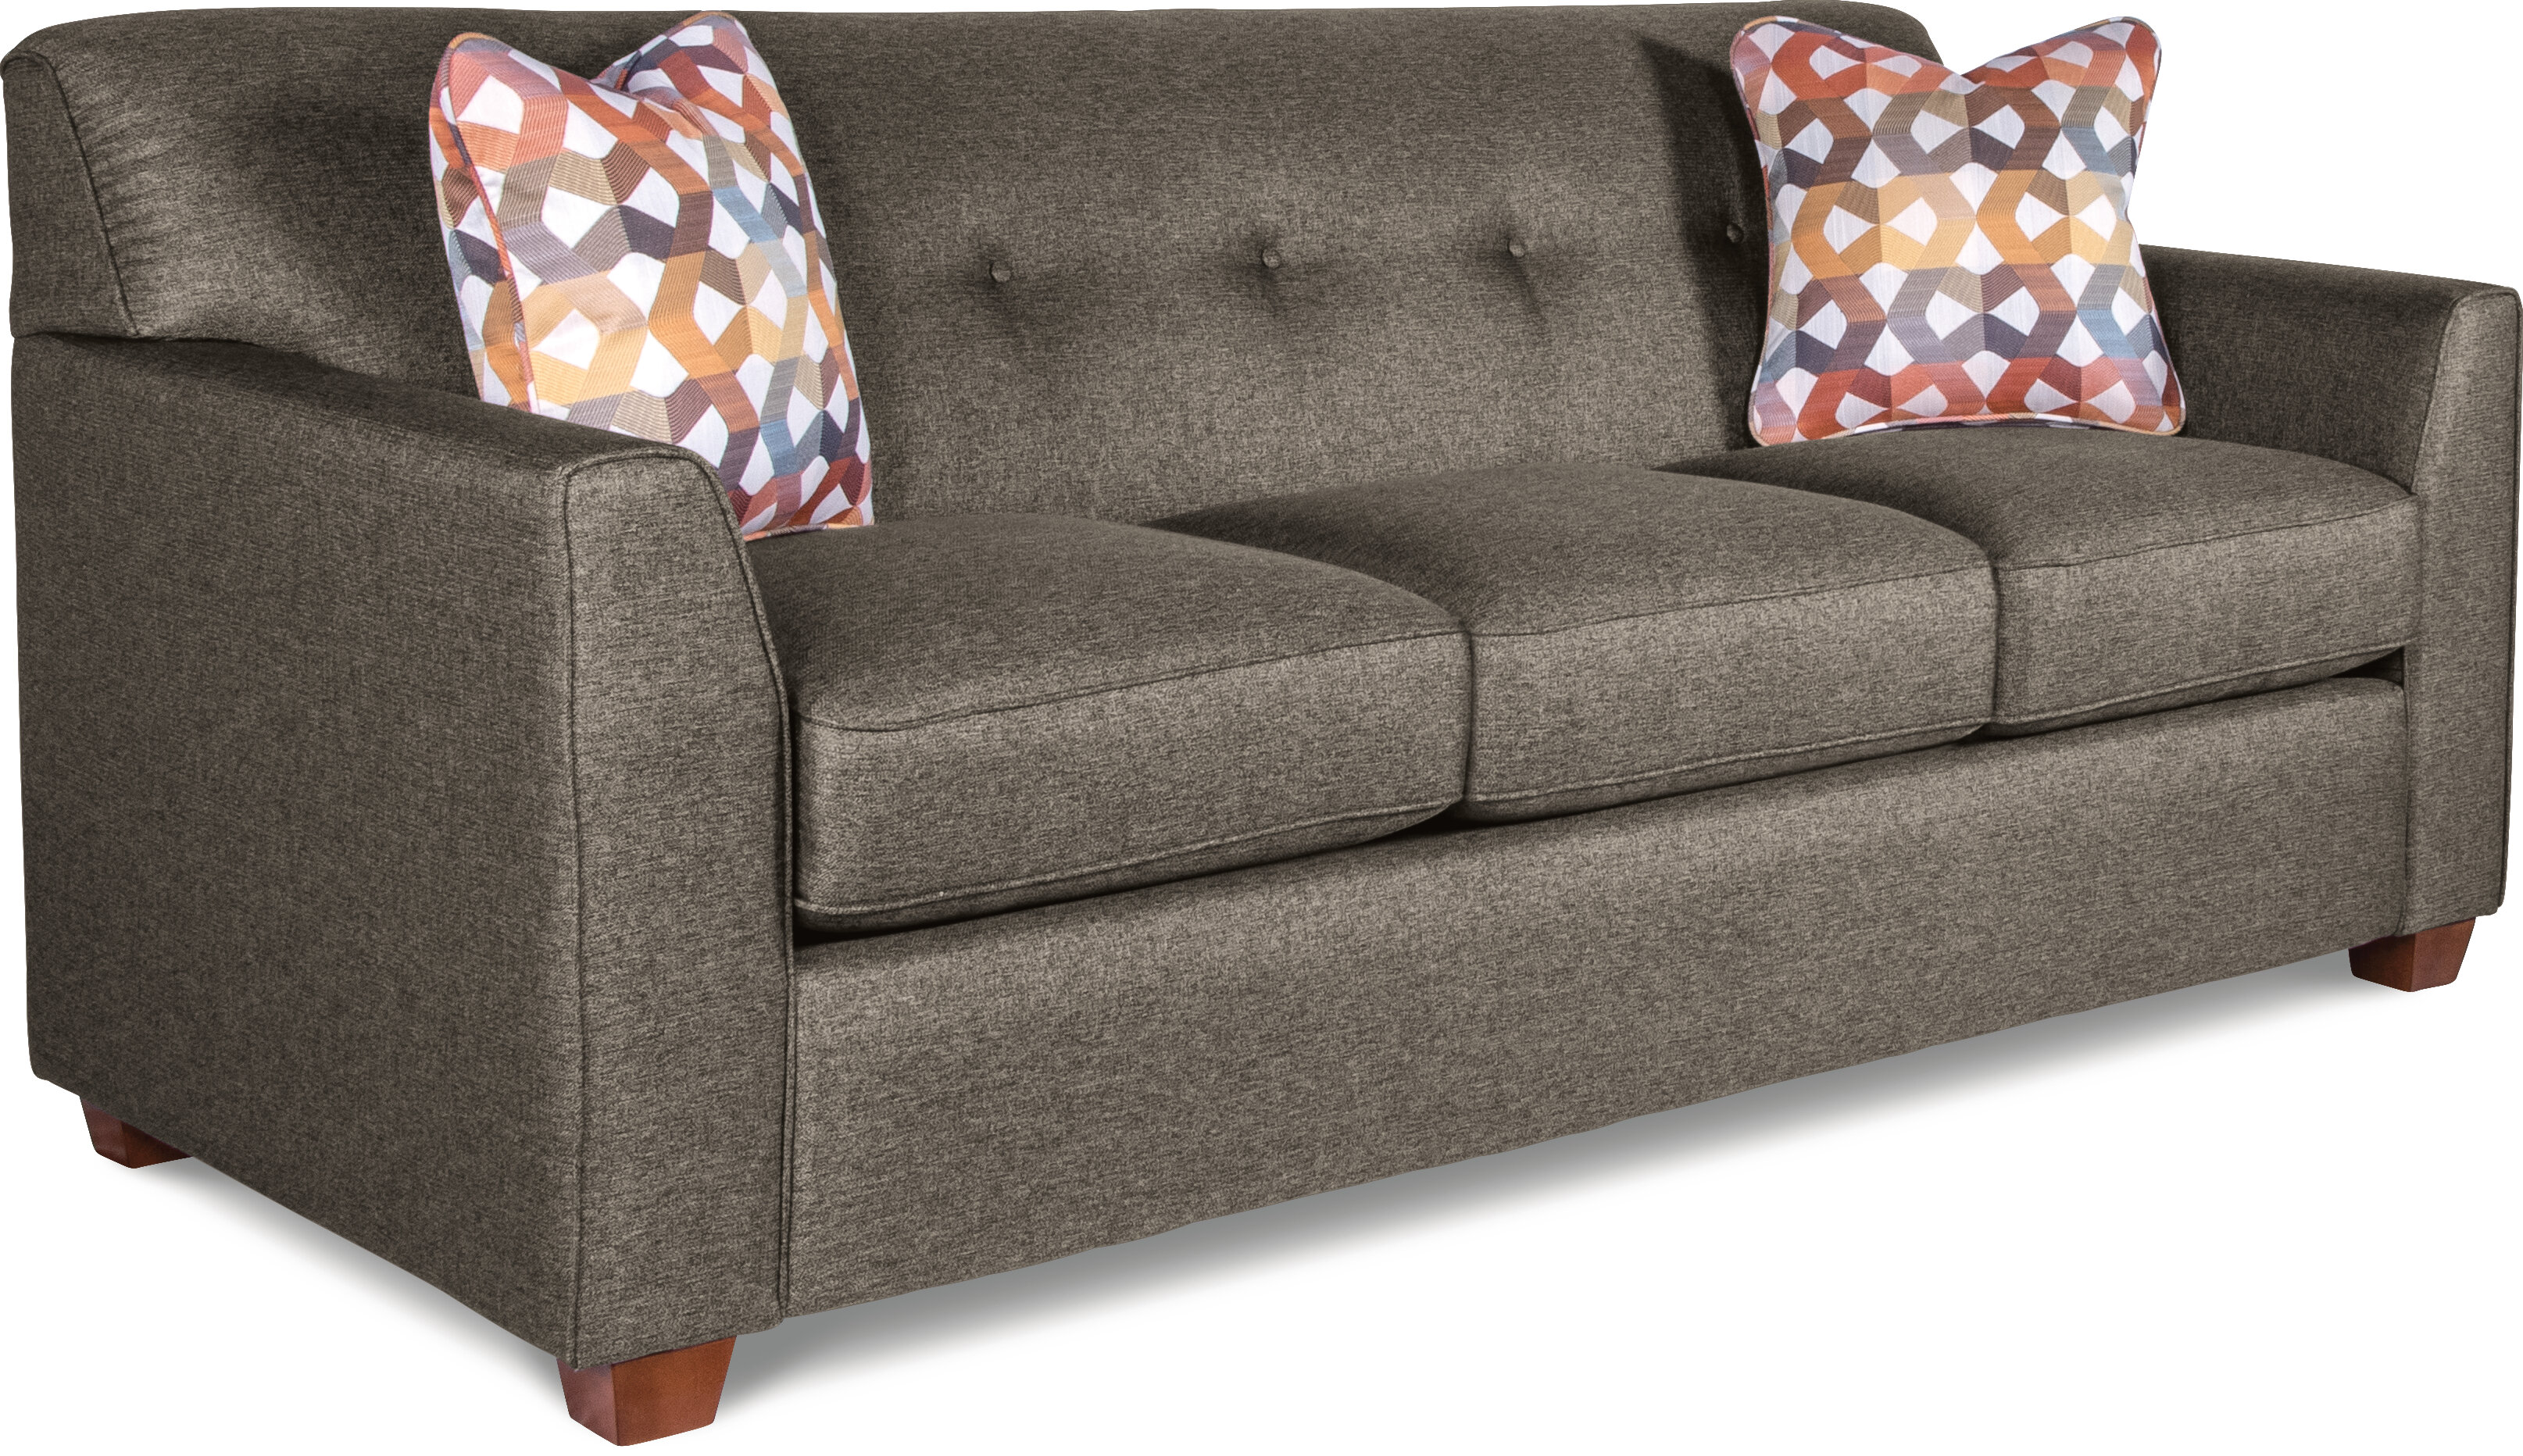 La Z Boy Sofa La-Z-Boy Dixie Sofa | Wayfair